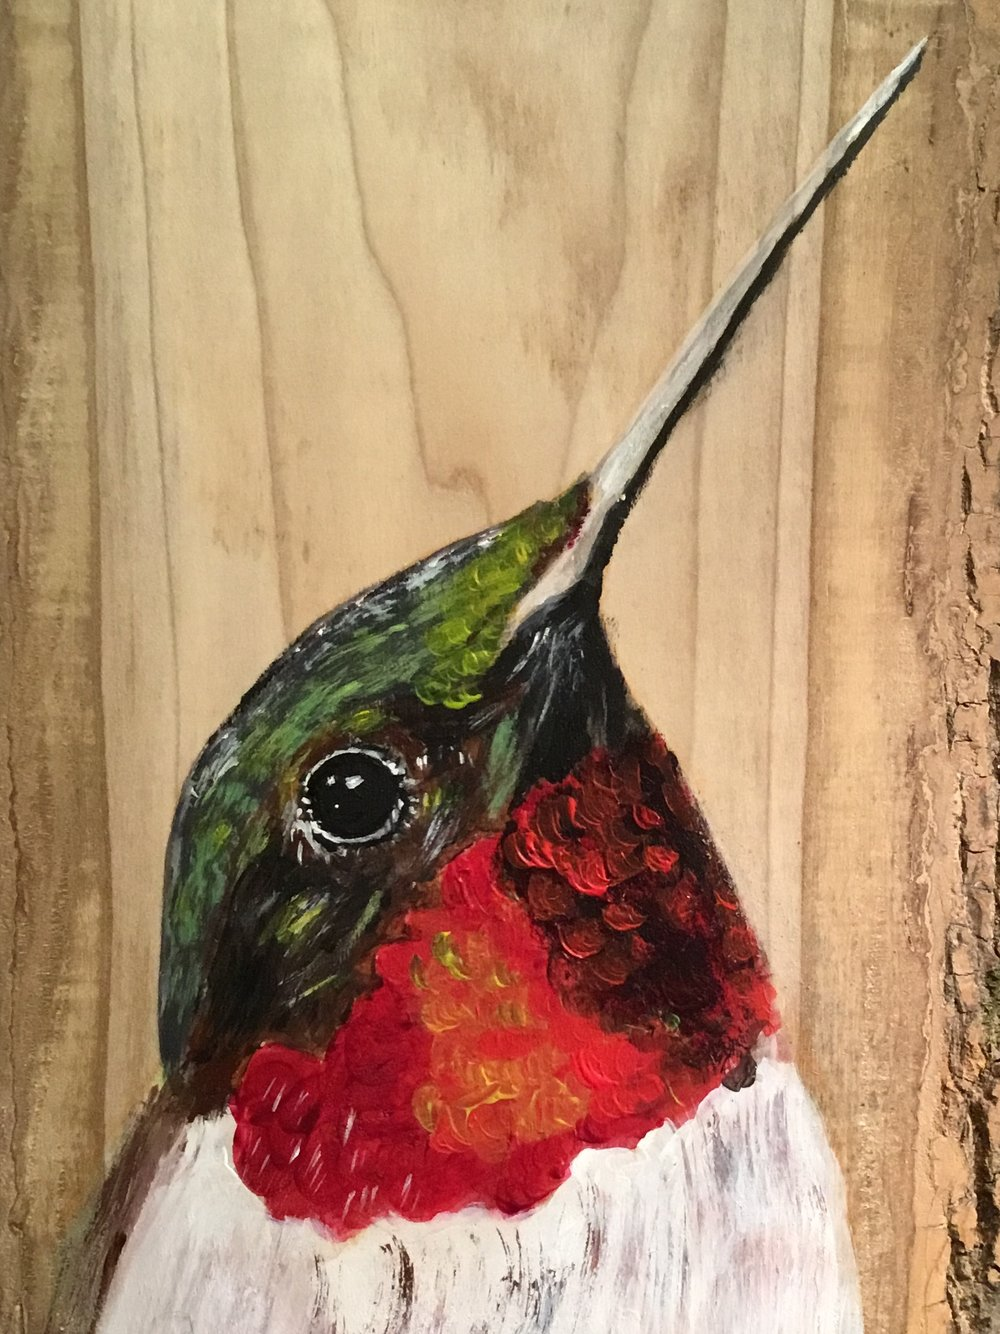 """Hummer"" by Macel Hamilton, Acrylic on wood, 10x12in, 2017, SOLD"